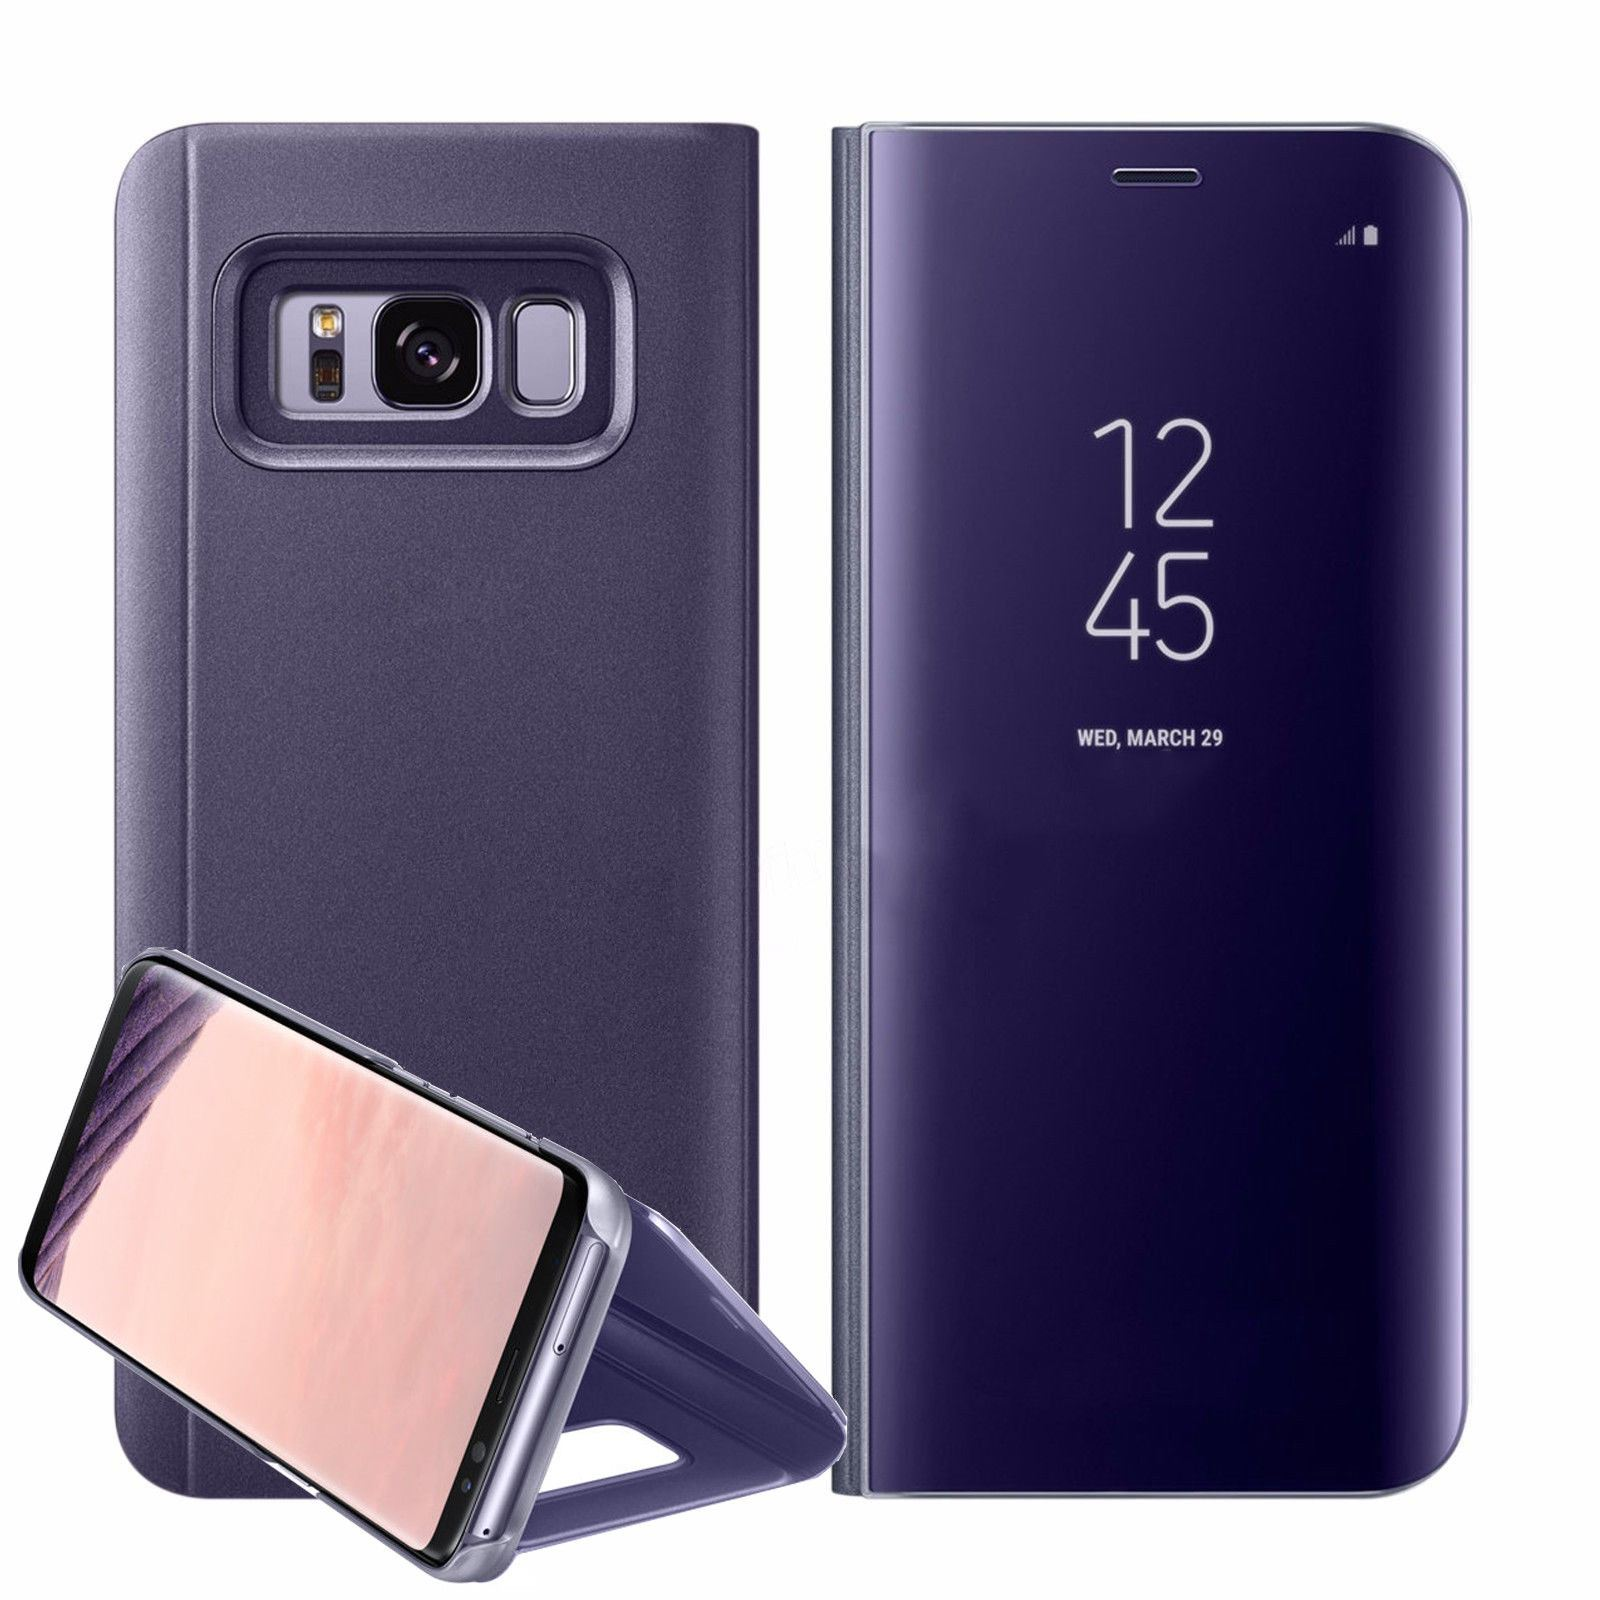 New-Samsung-Galaxy-S8-S9-S10-Smart-View-Mirror-Leather-Flip-Stand-Case-Cover miniatura 30